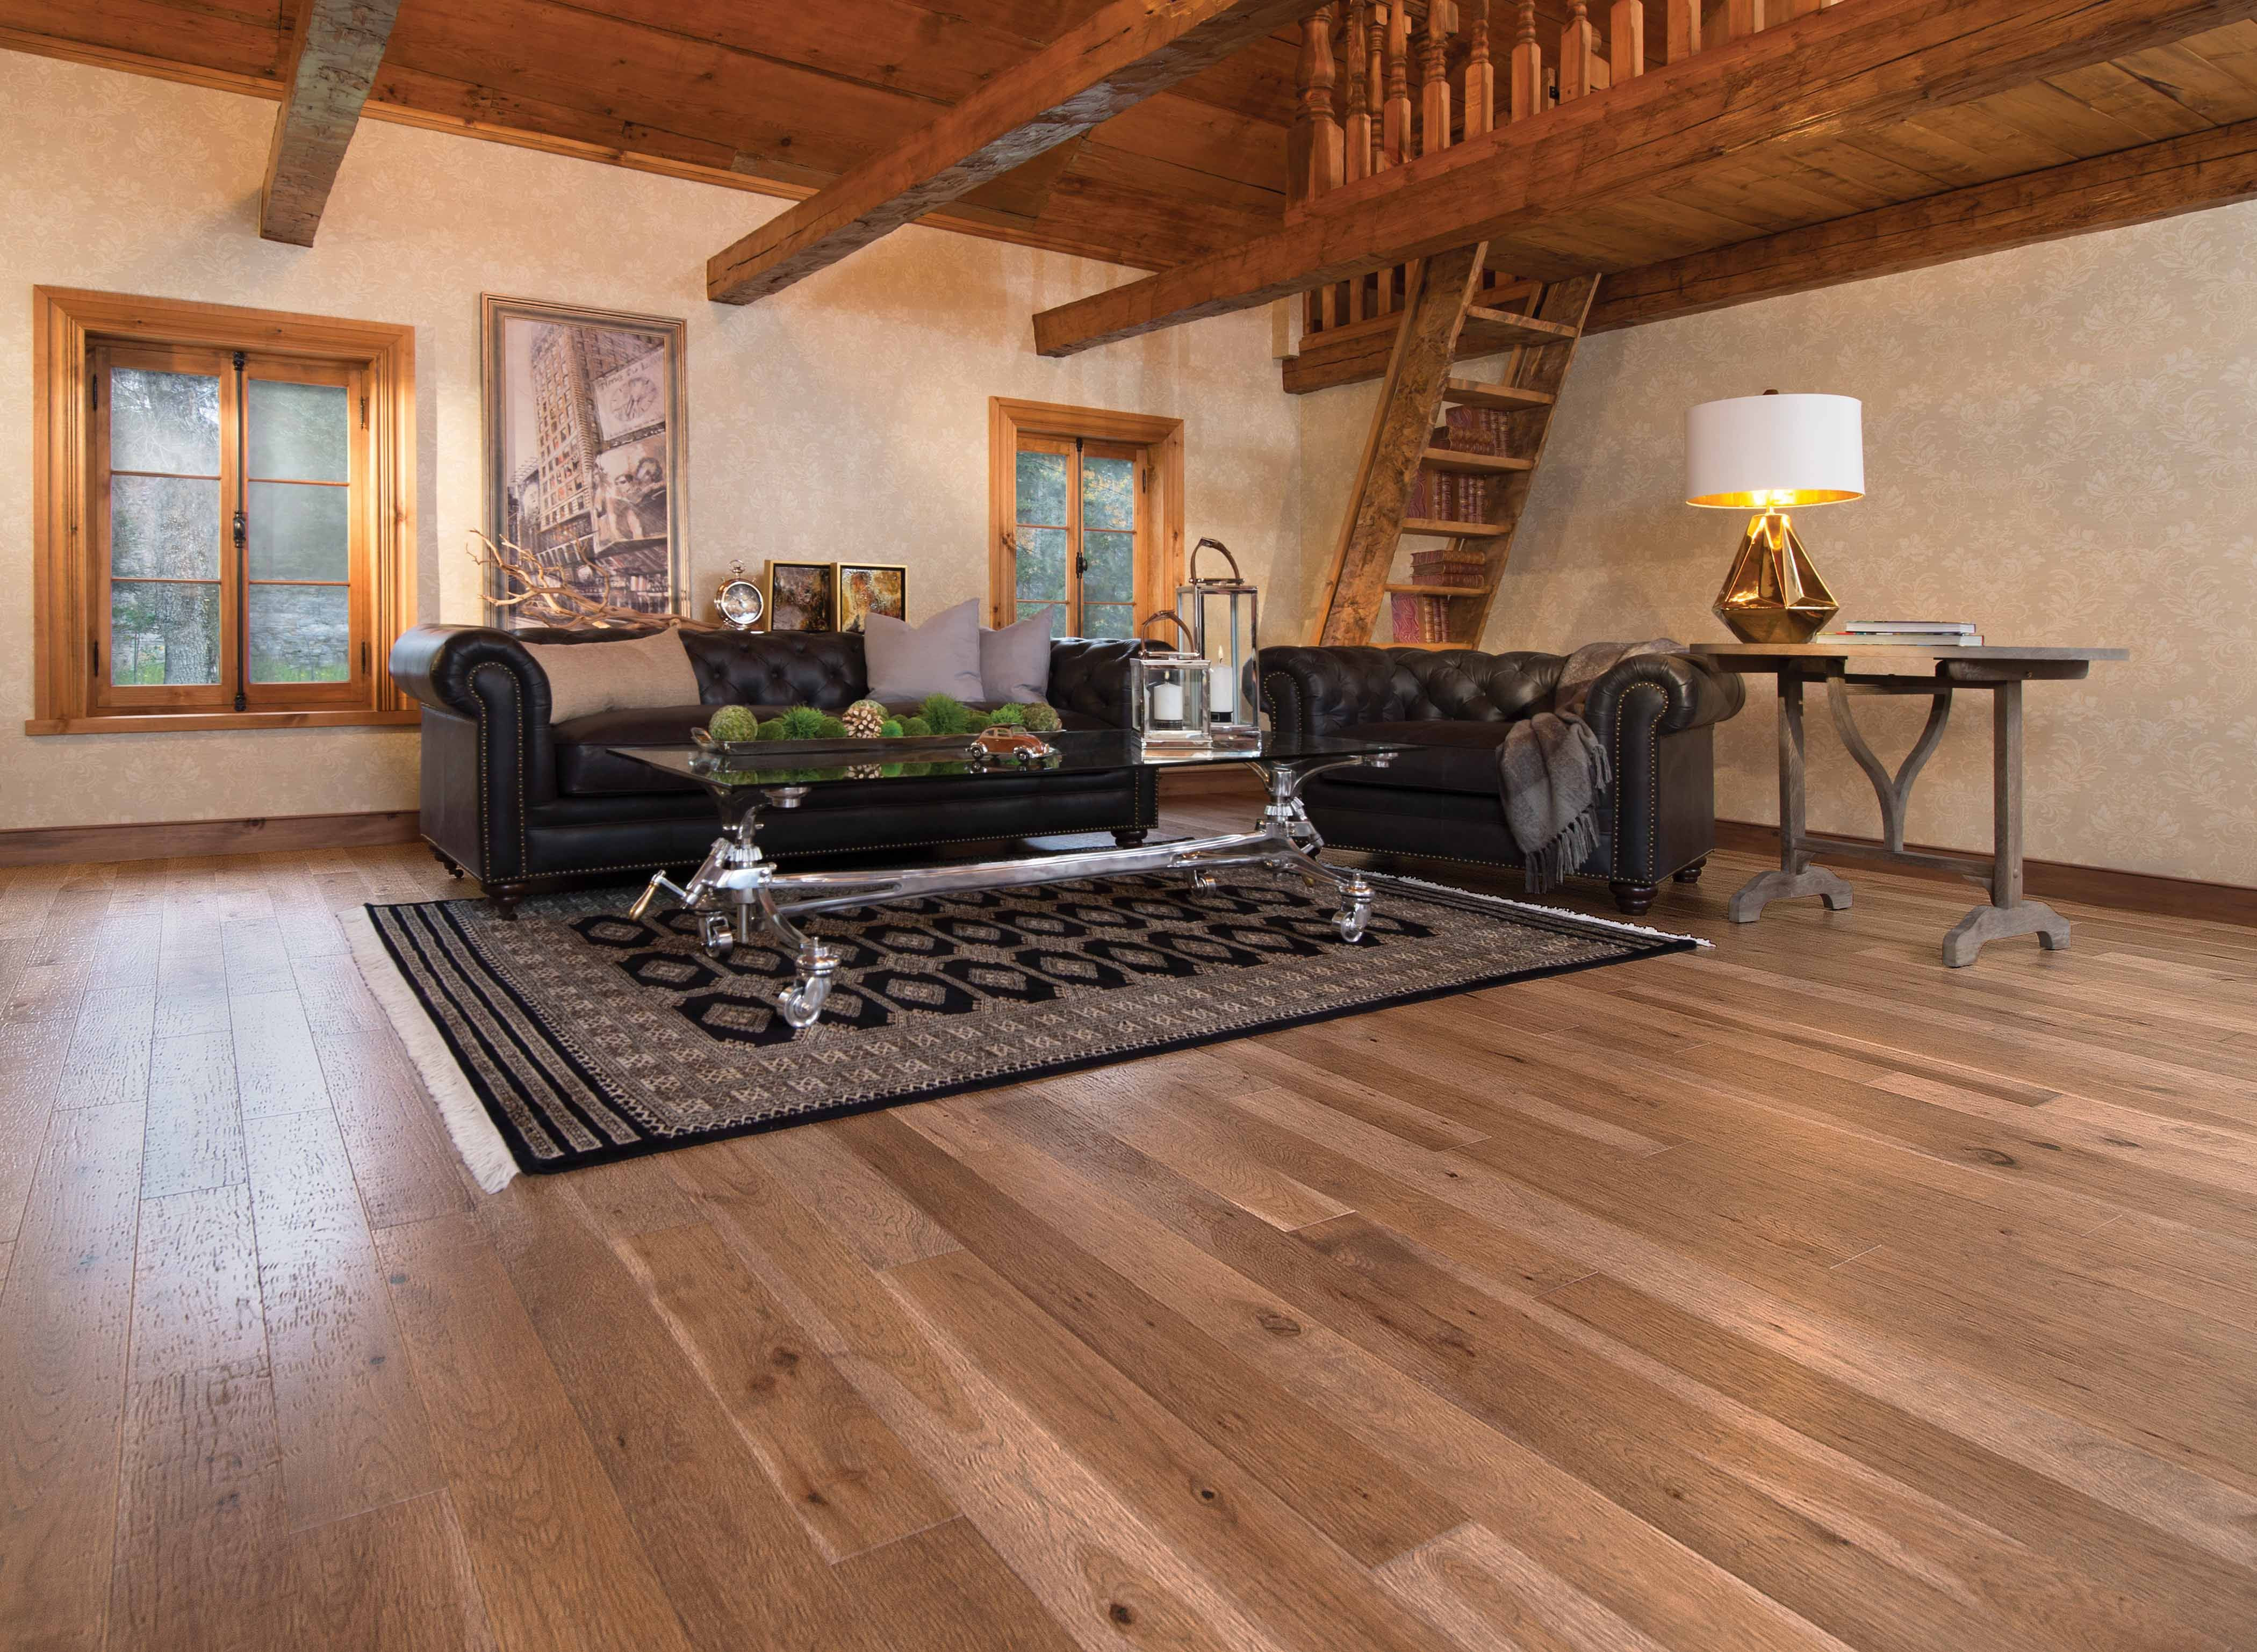 kahrs engineered hardwood flooring reviews of review mirage wood floor www topsimages com with new to old hickory tree bark kitchens pinterest tree jpg 4200x3075 review mirage wood floor